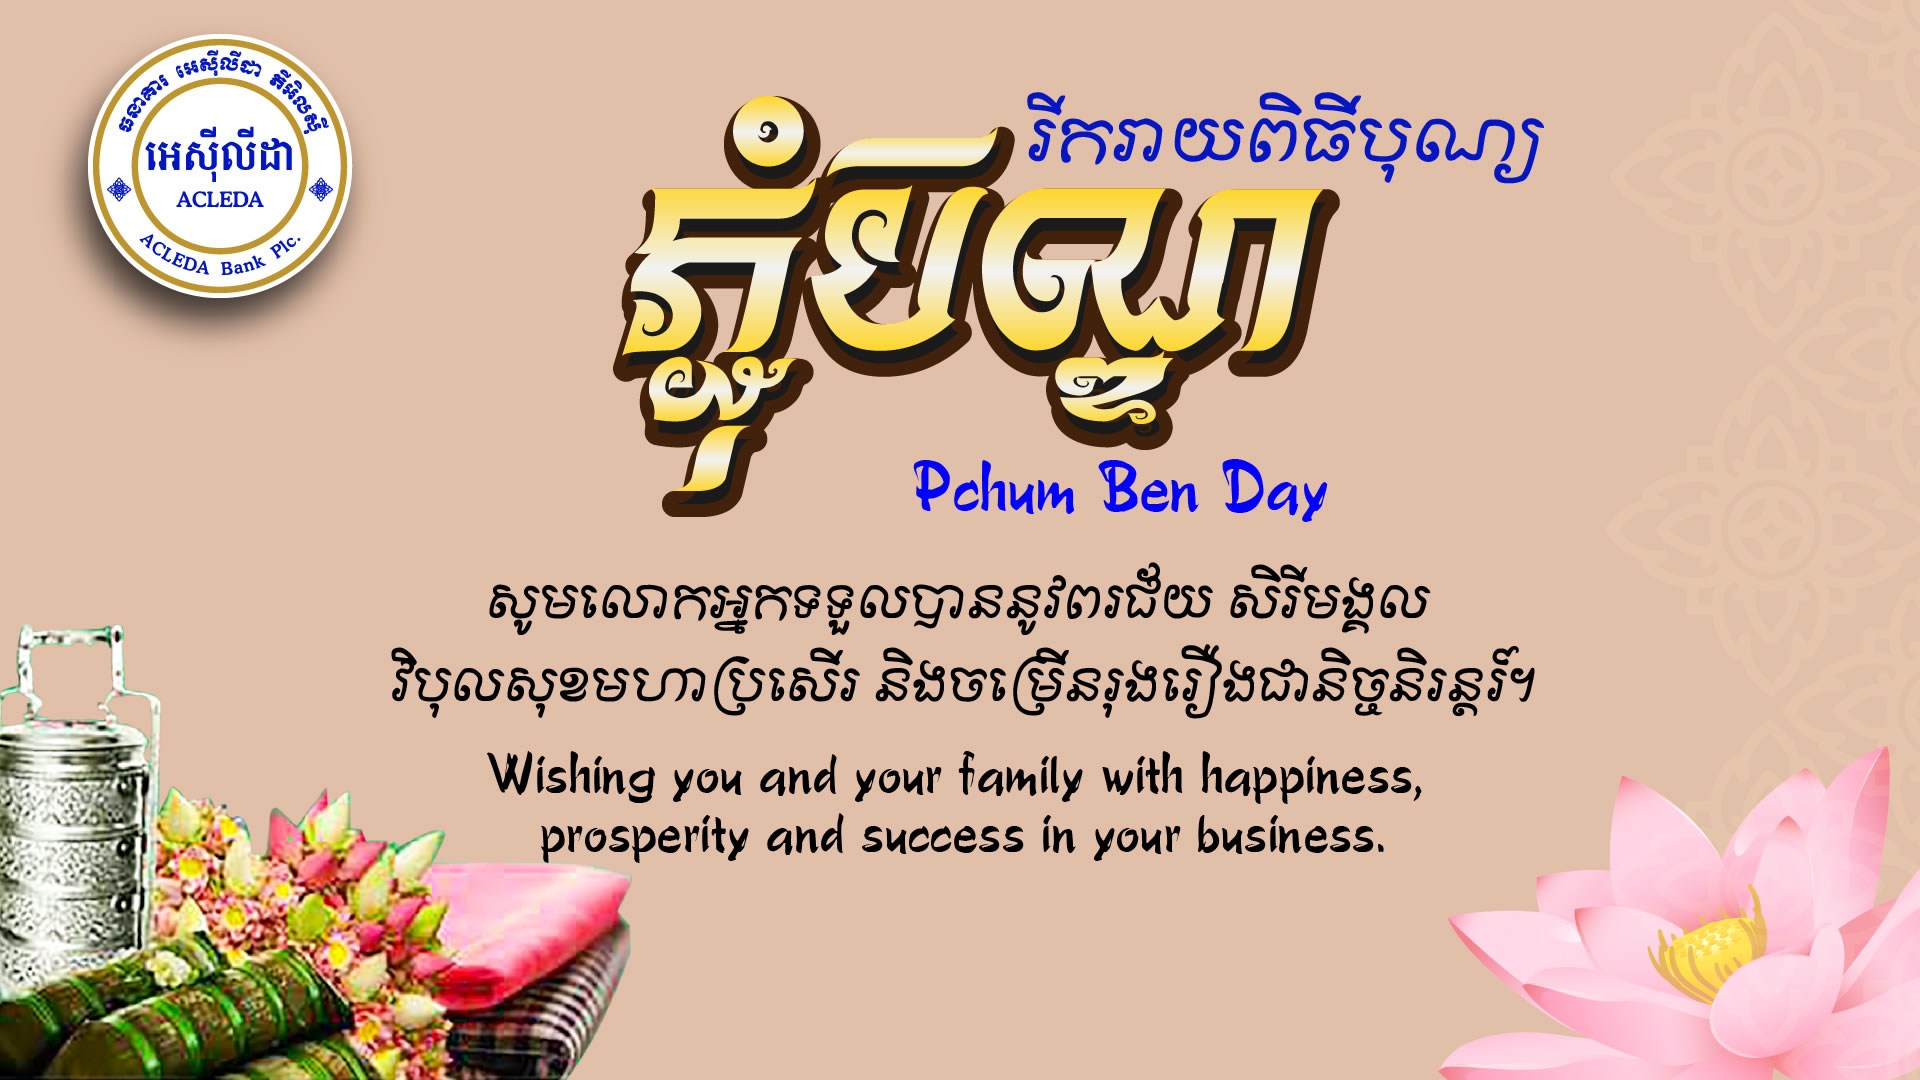 Contract Business New Year Greetings Messages Topsimages